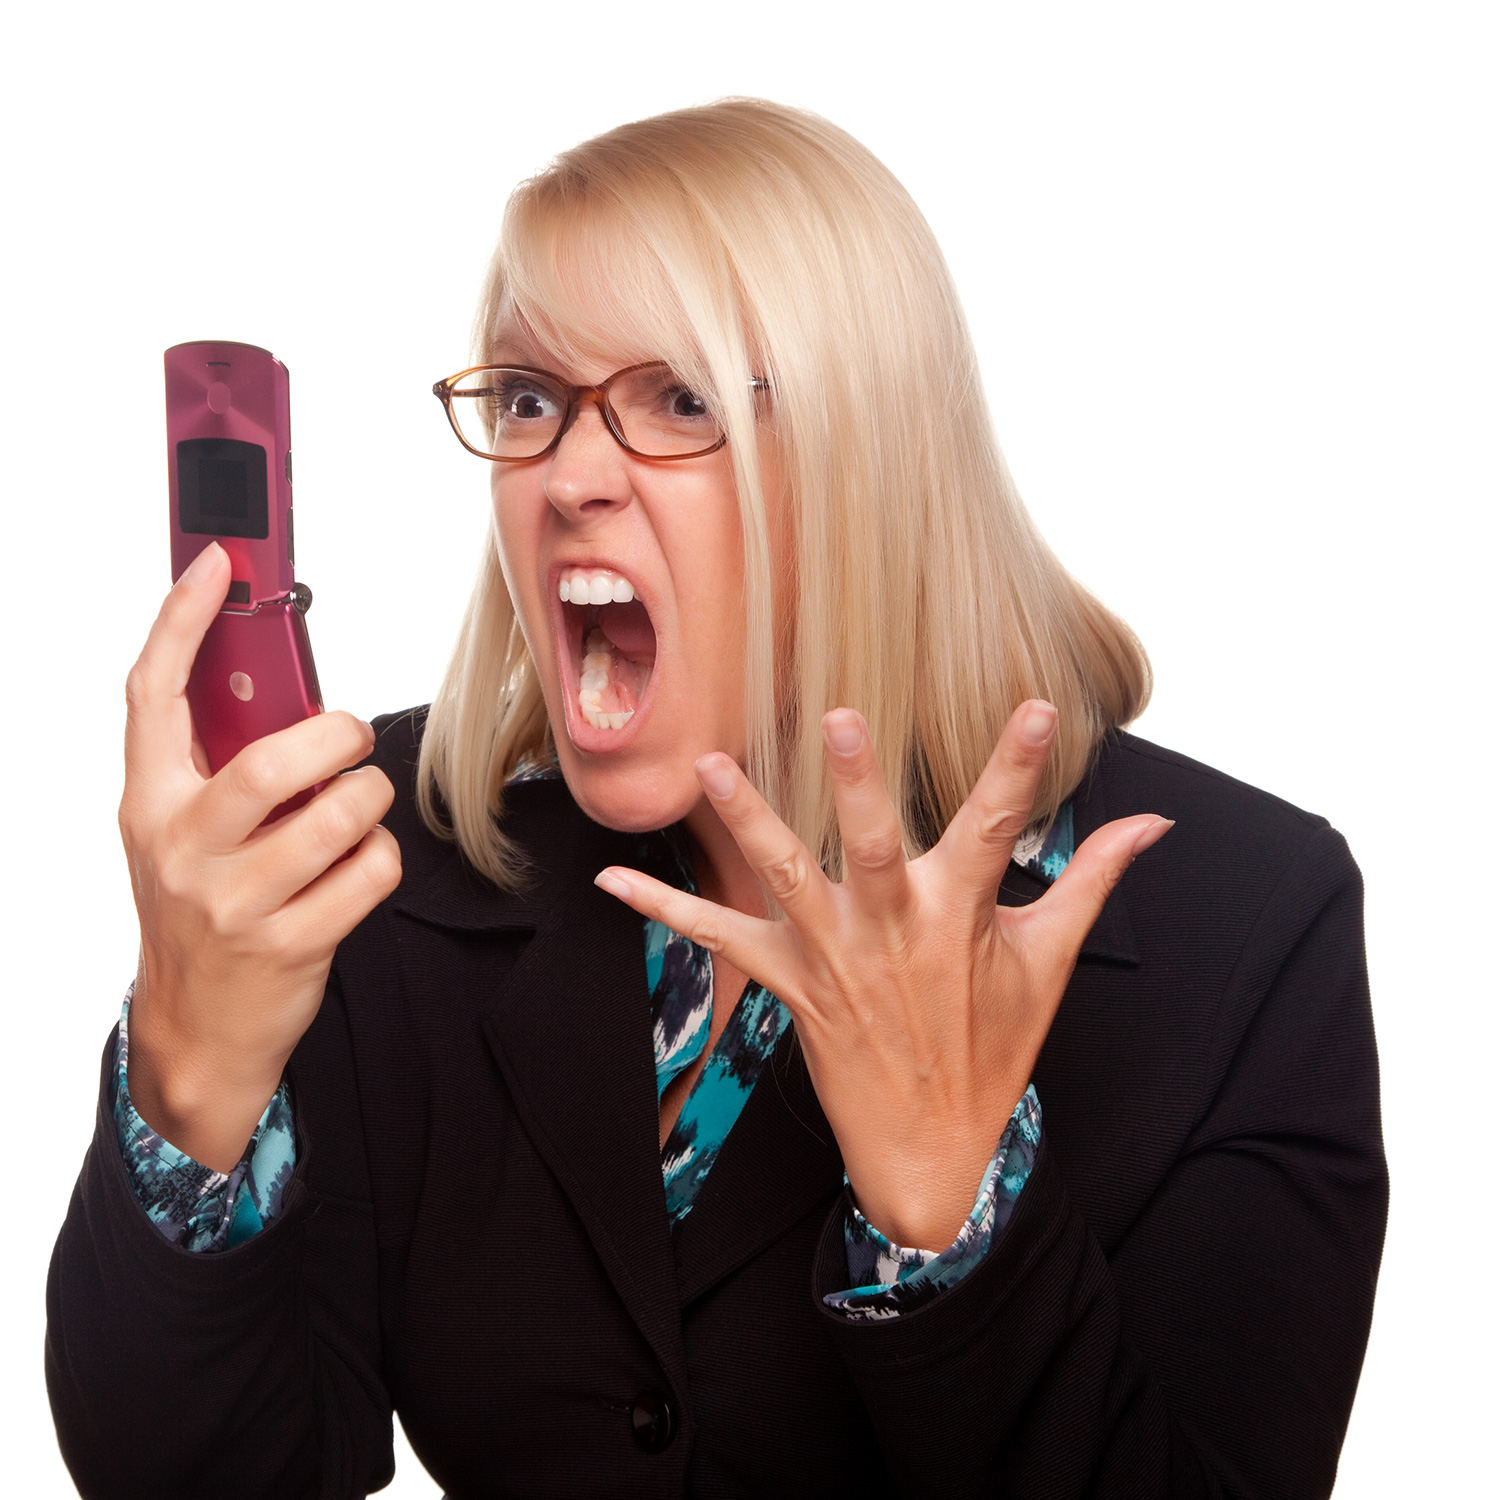 Woman-phone-angry